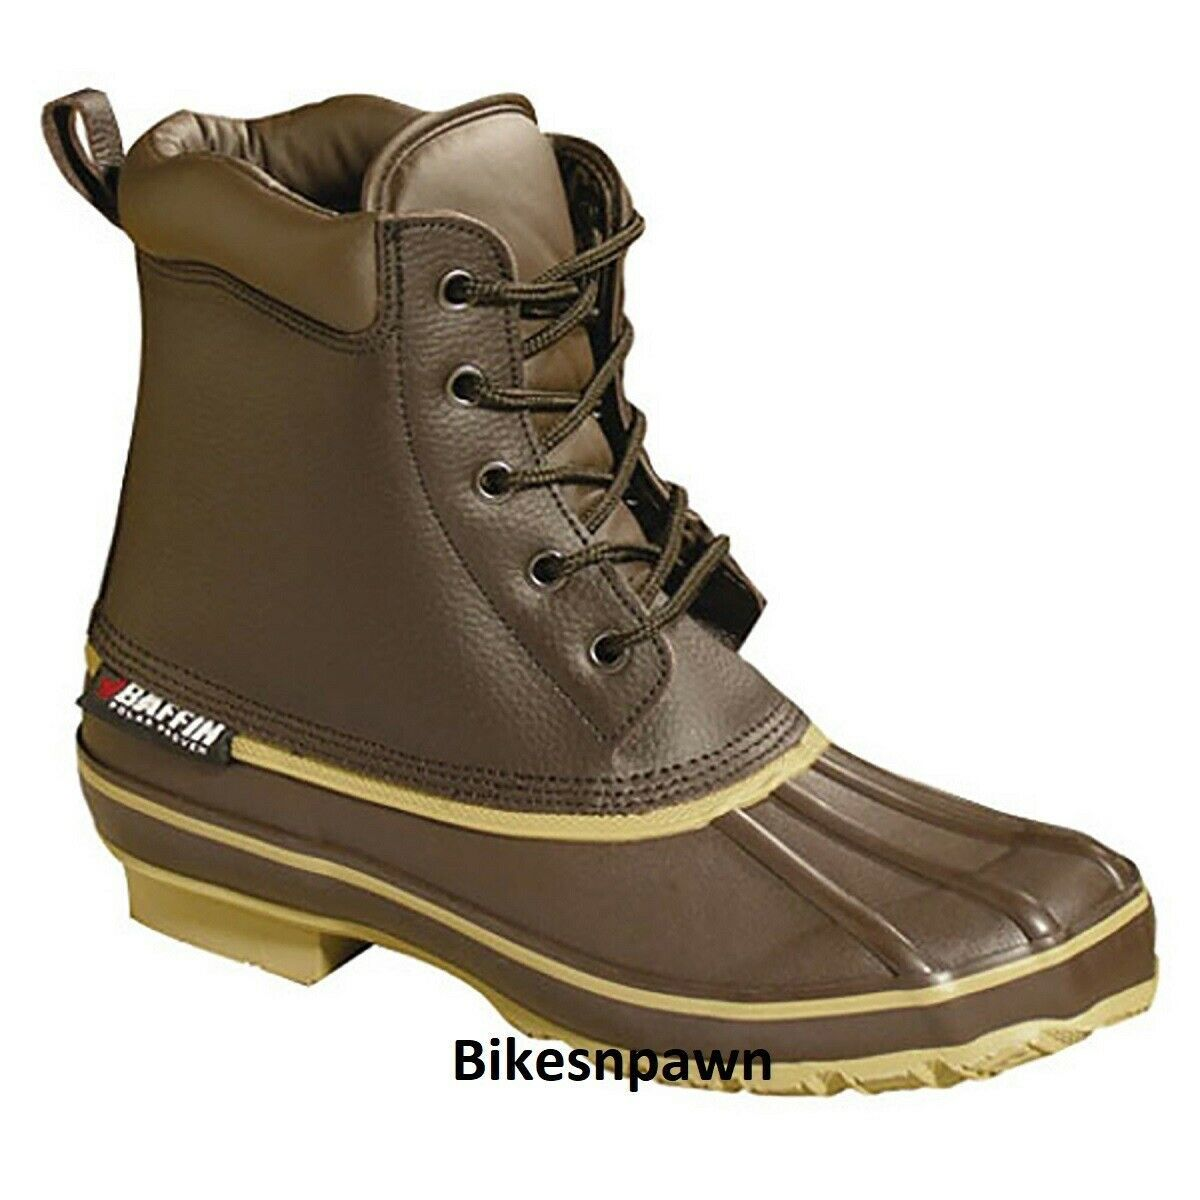 New Mens Size 13 Baffin Moose Waterproof All Season Boots Rated -0 F